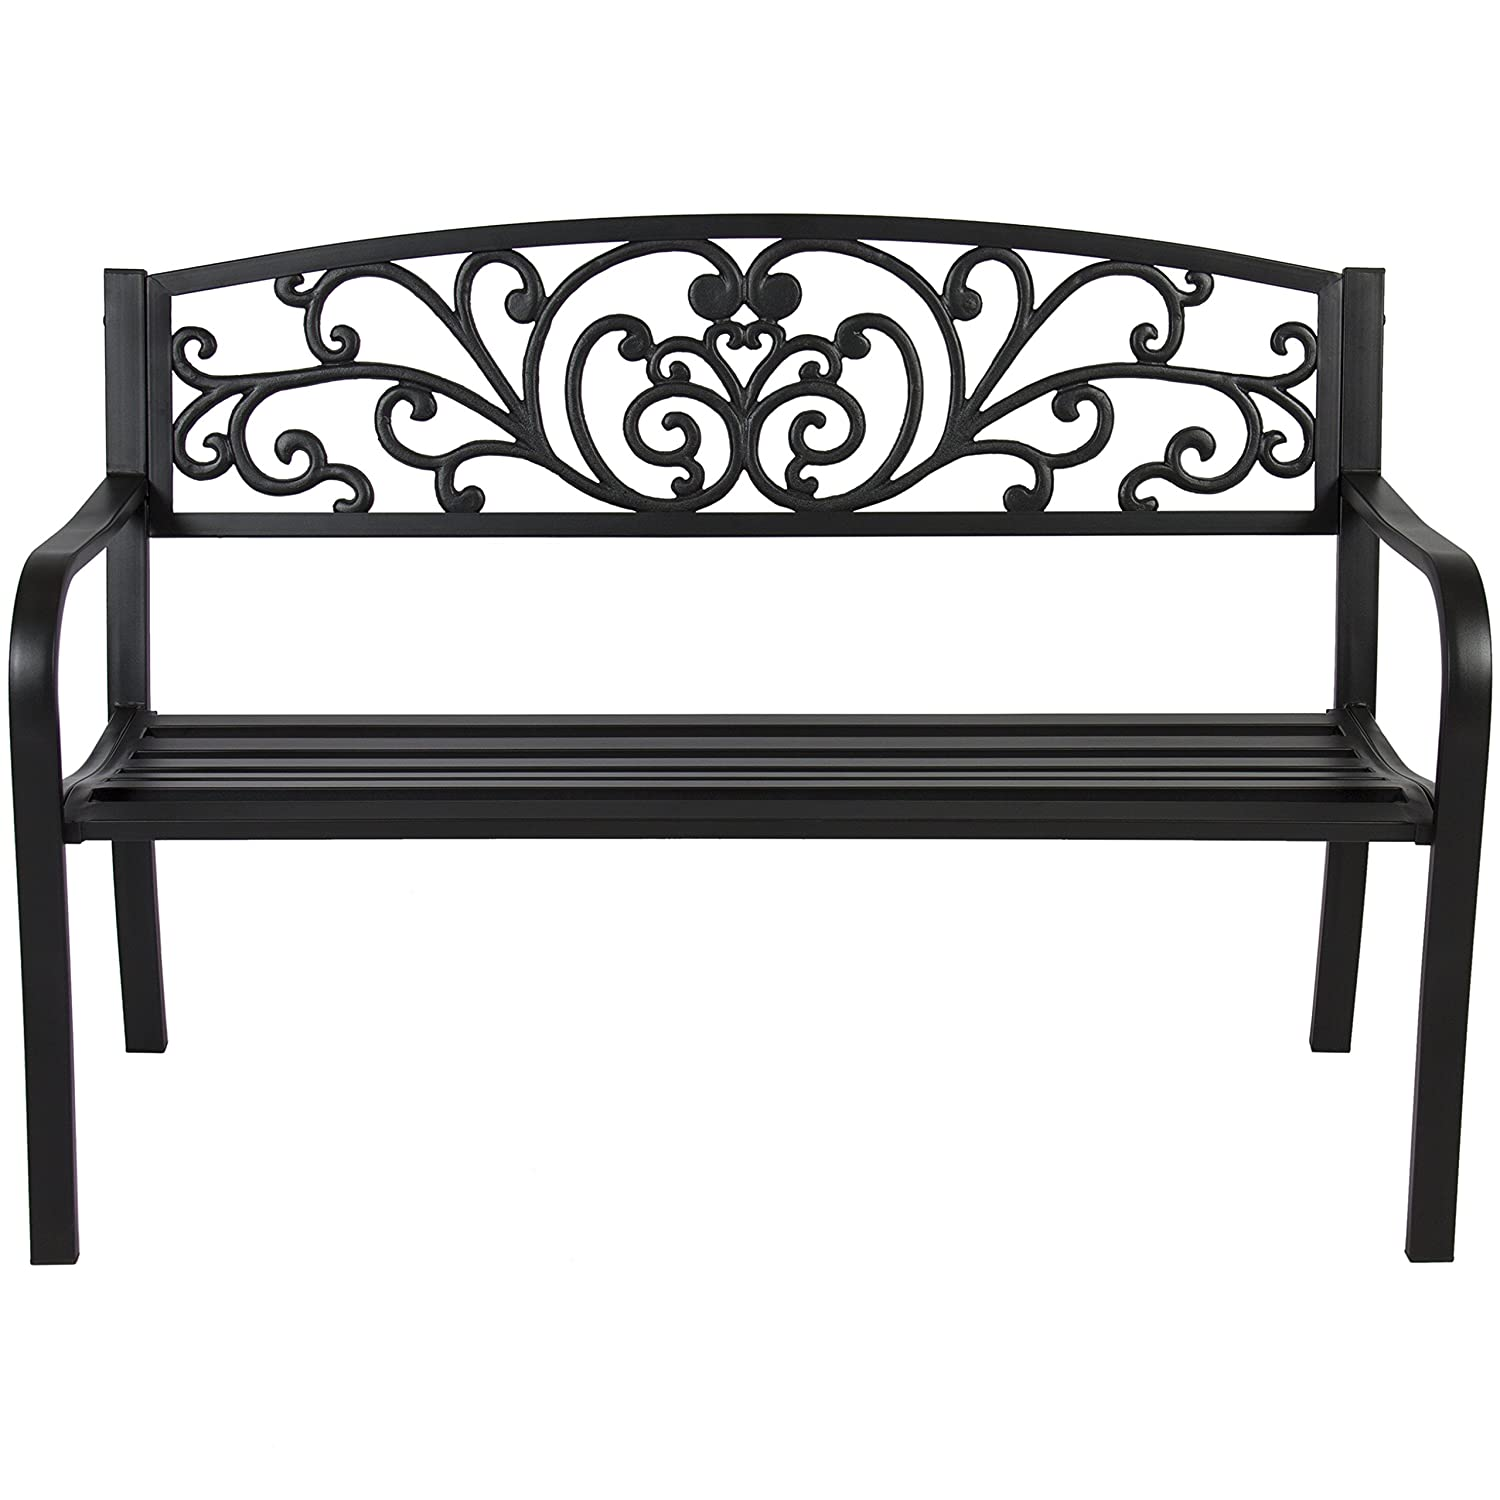 Best Choice Products 50in Steel Outdoor Park Bench Porch Chair Yard Furniture w Floral Scroll Design, Slatted Seat for Backyard, Garden, Patio, Porch – Black